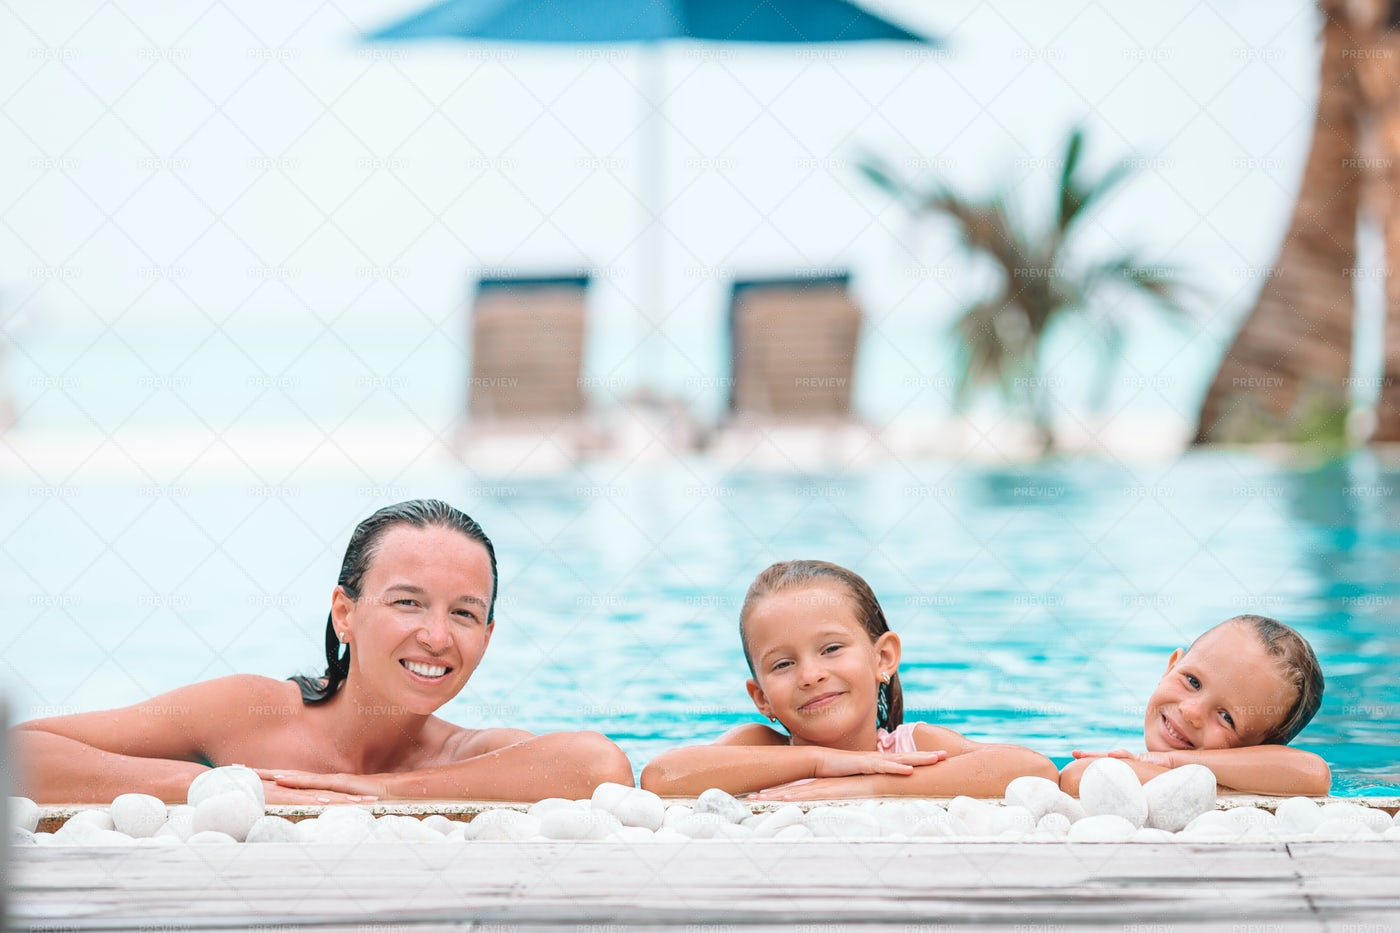 Mother And Daughters At The Pool: Stock Photos